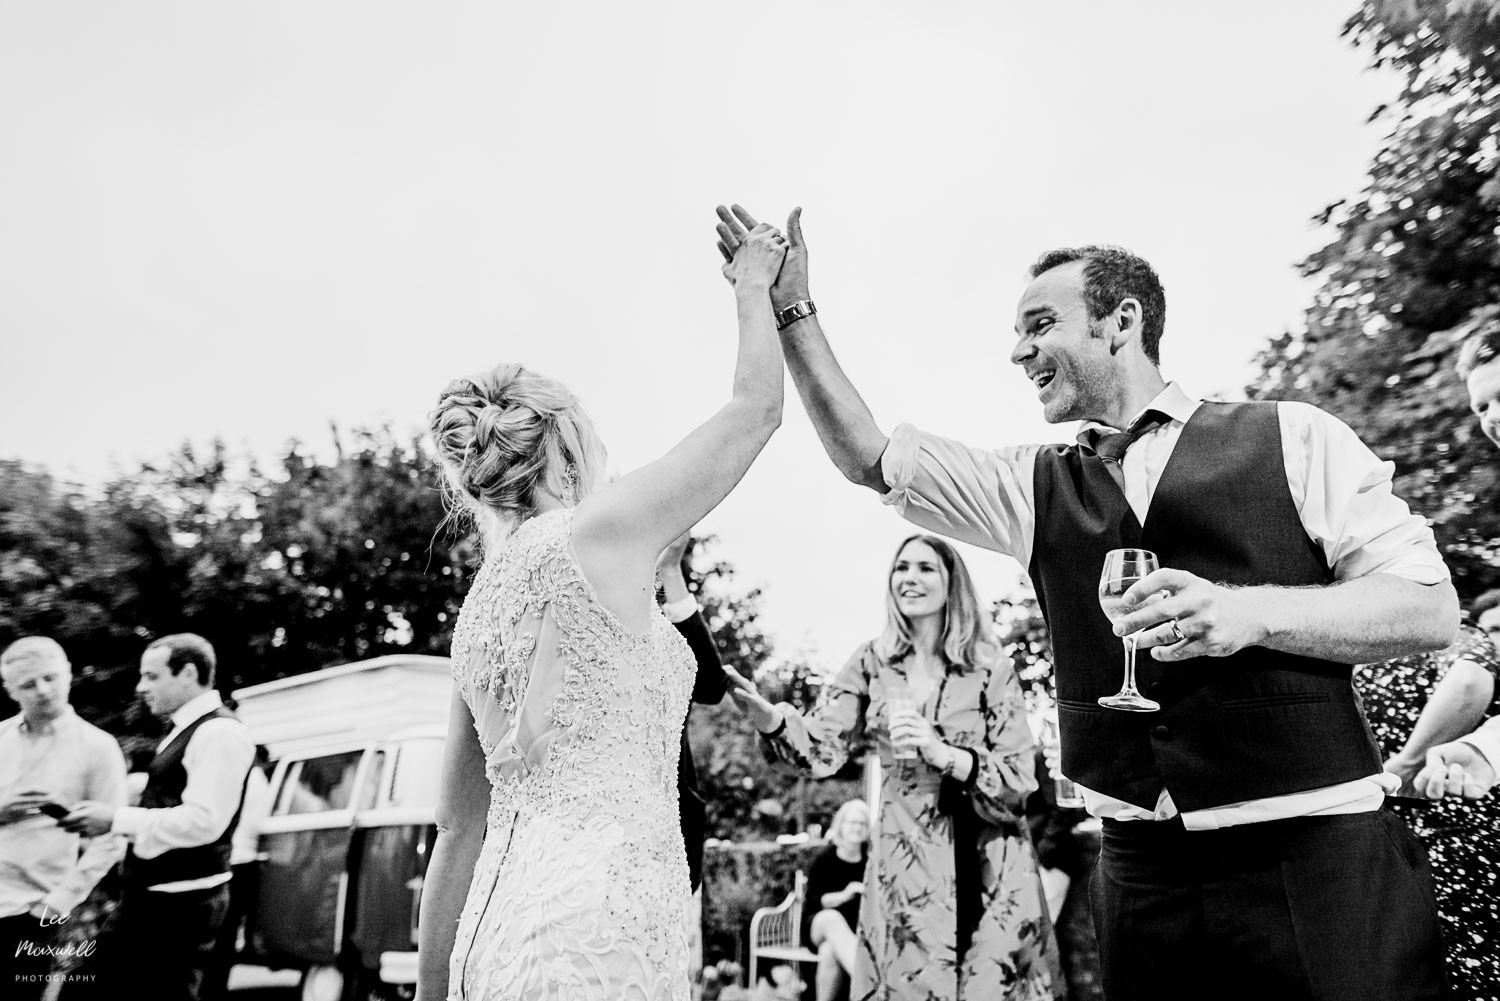 High five the bride